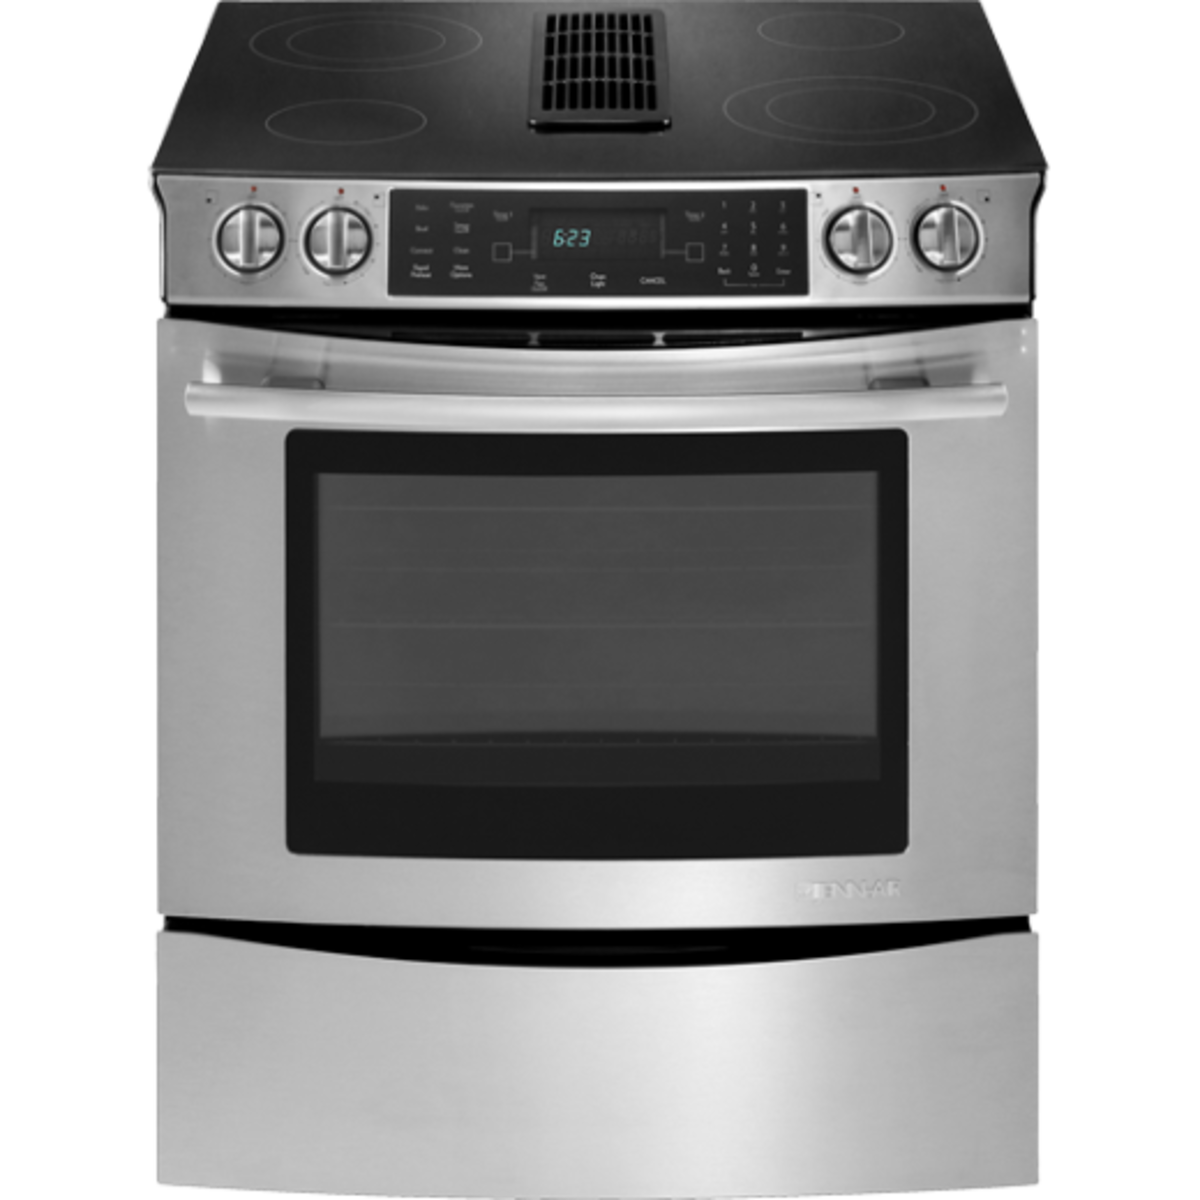 cooktop with vent. The Jenn Air JES9800CAS Is An Electric Range You Do Not Want In Your Kitchen. Cooktop With Vent C